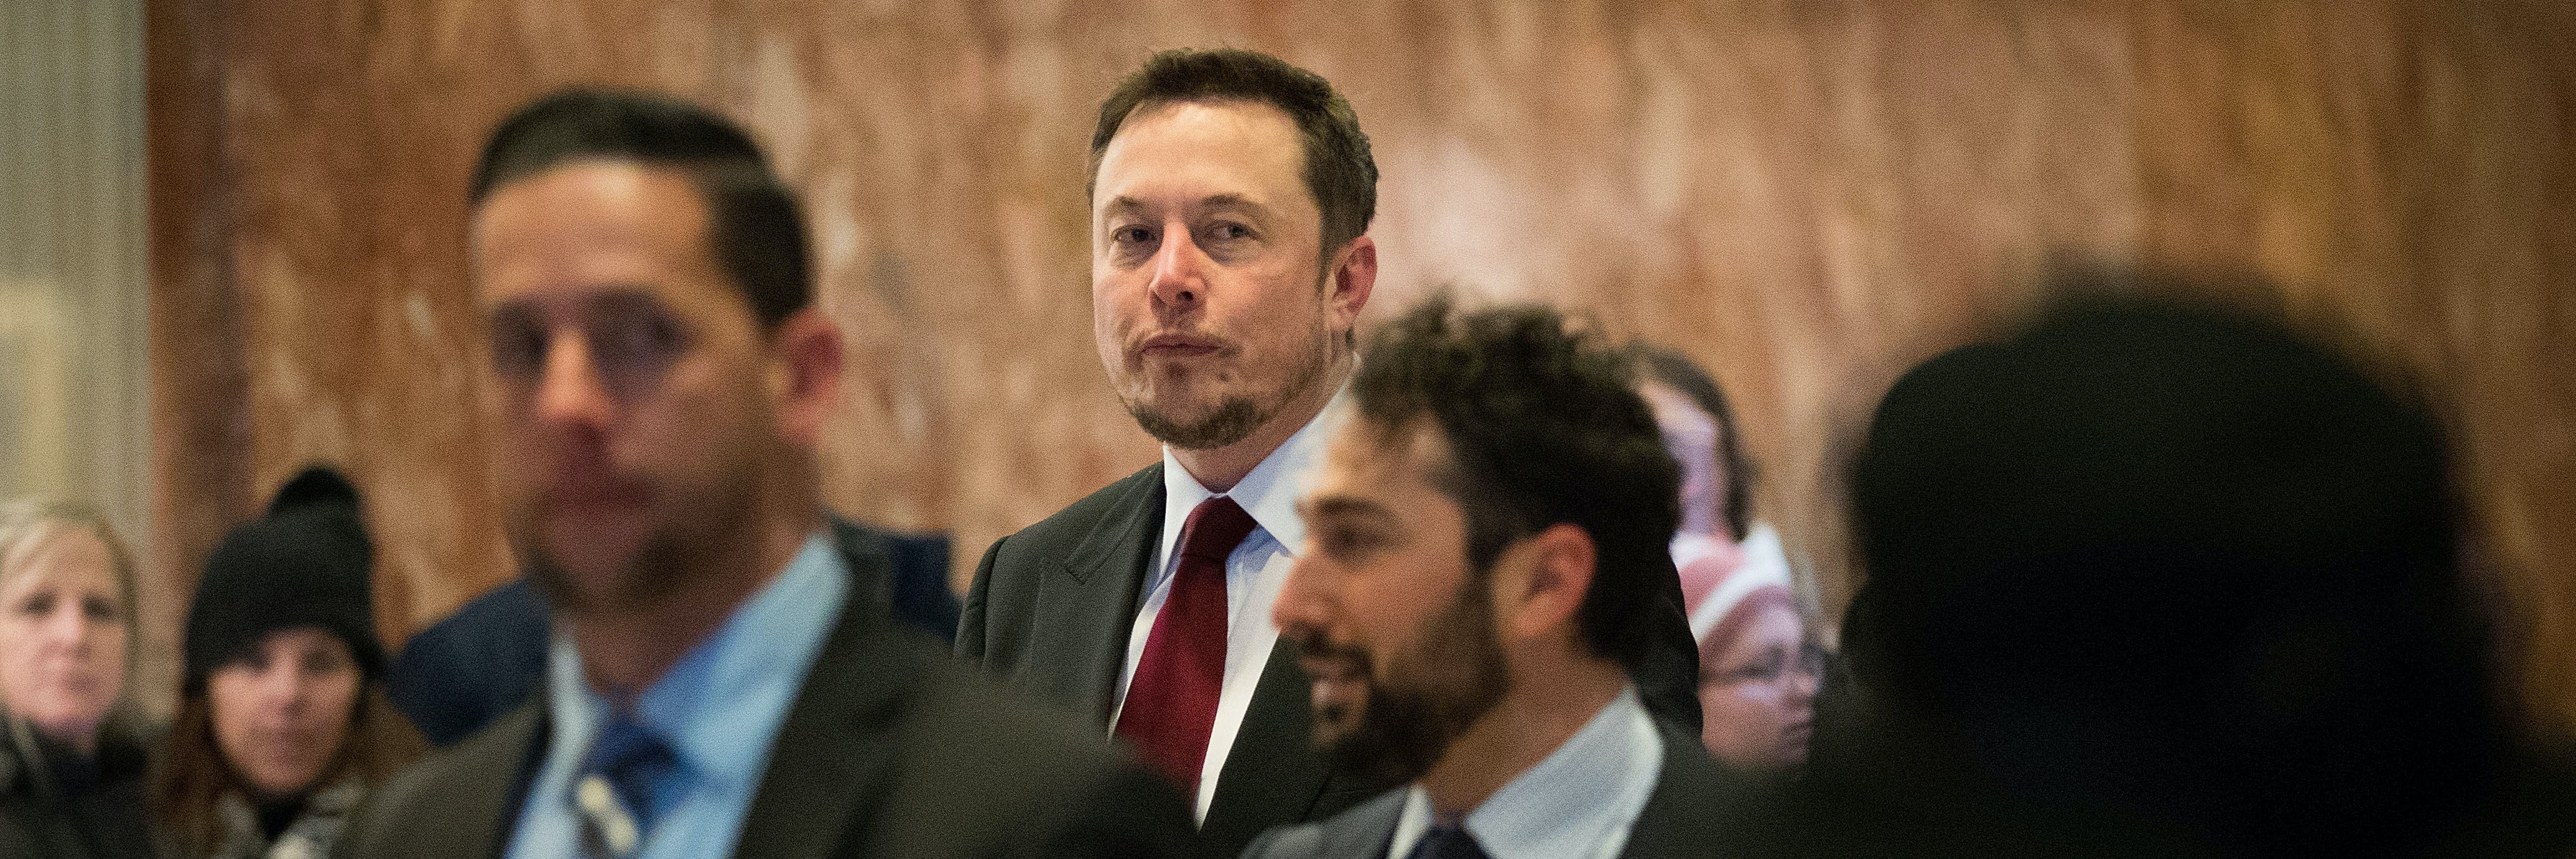 NEW YORK, NY - JANUARY 6: Entrepreneur Elon Musk arrives at Trump Tower, January 6, 2017 in New York City. President-elect Donald Trump and his transition team are in the process of filling cabinet and other high level positions for the new administration. (Photo by Drew Angerer/Getty Images)